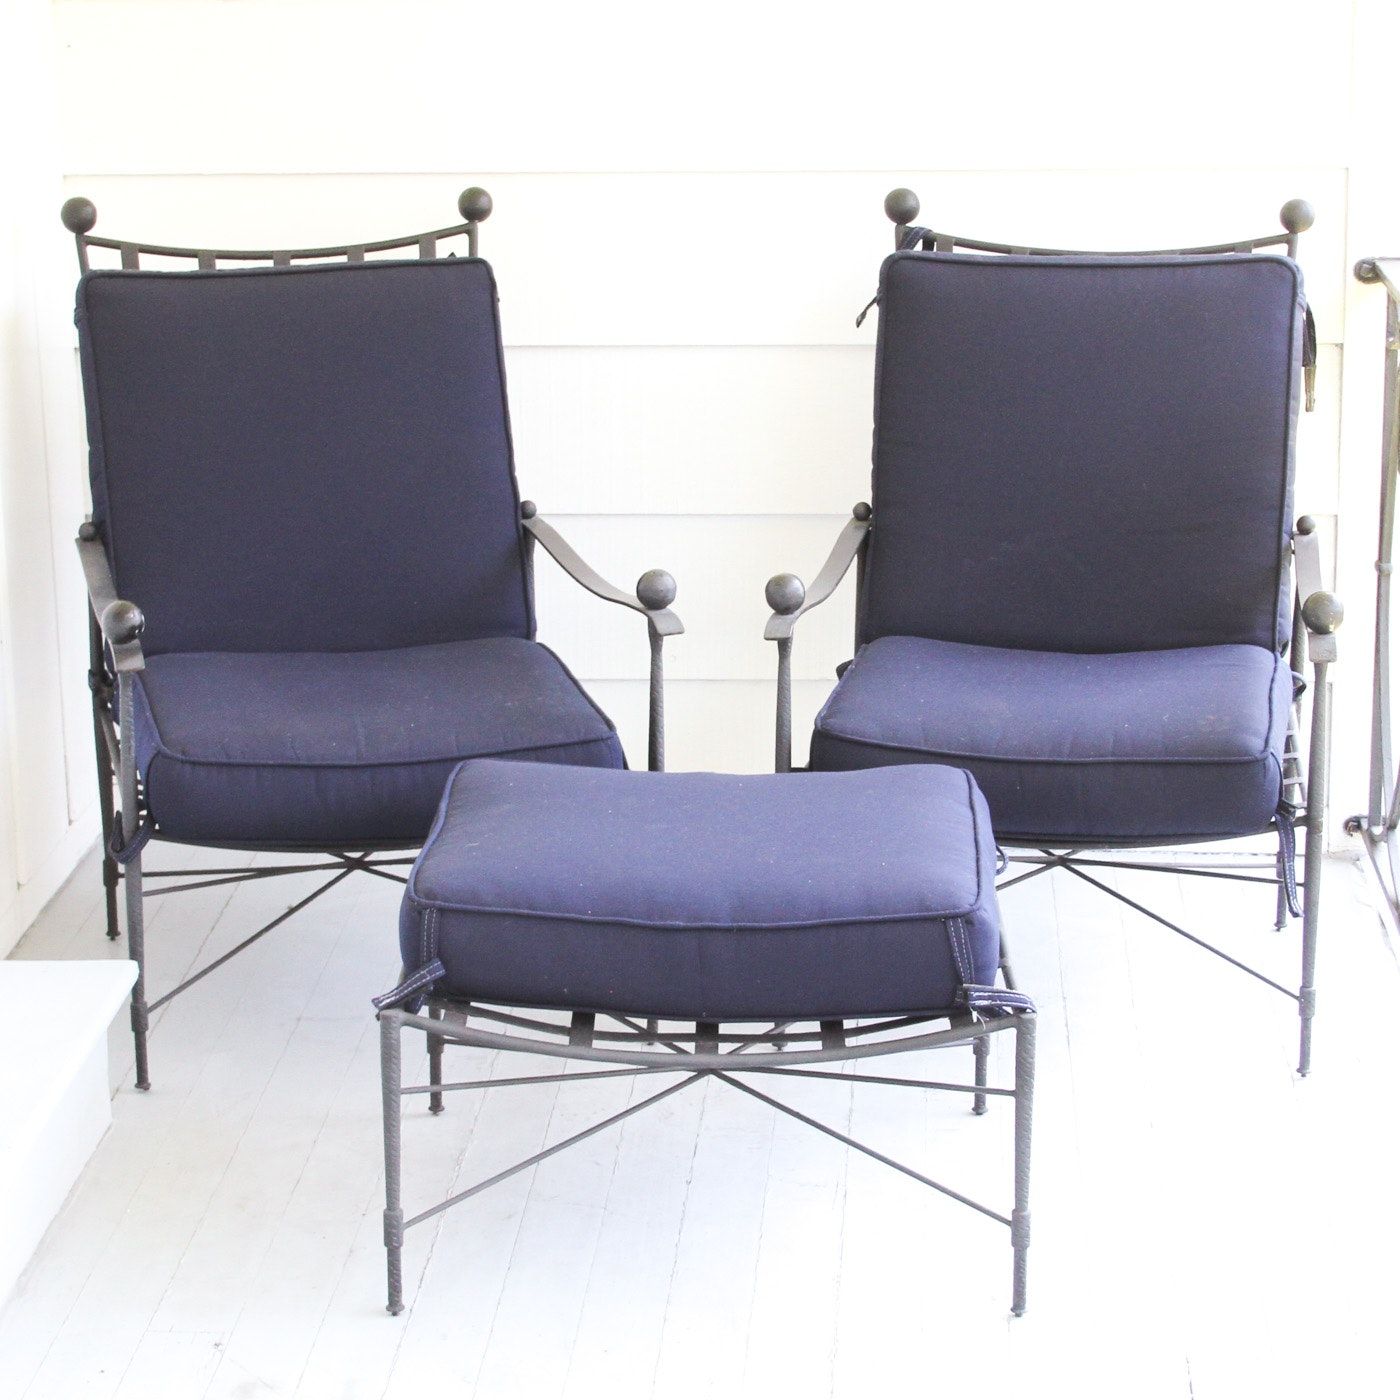 Pair of Outdoor Patio Chairs with Ottoman